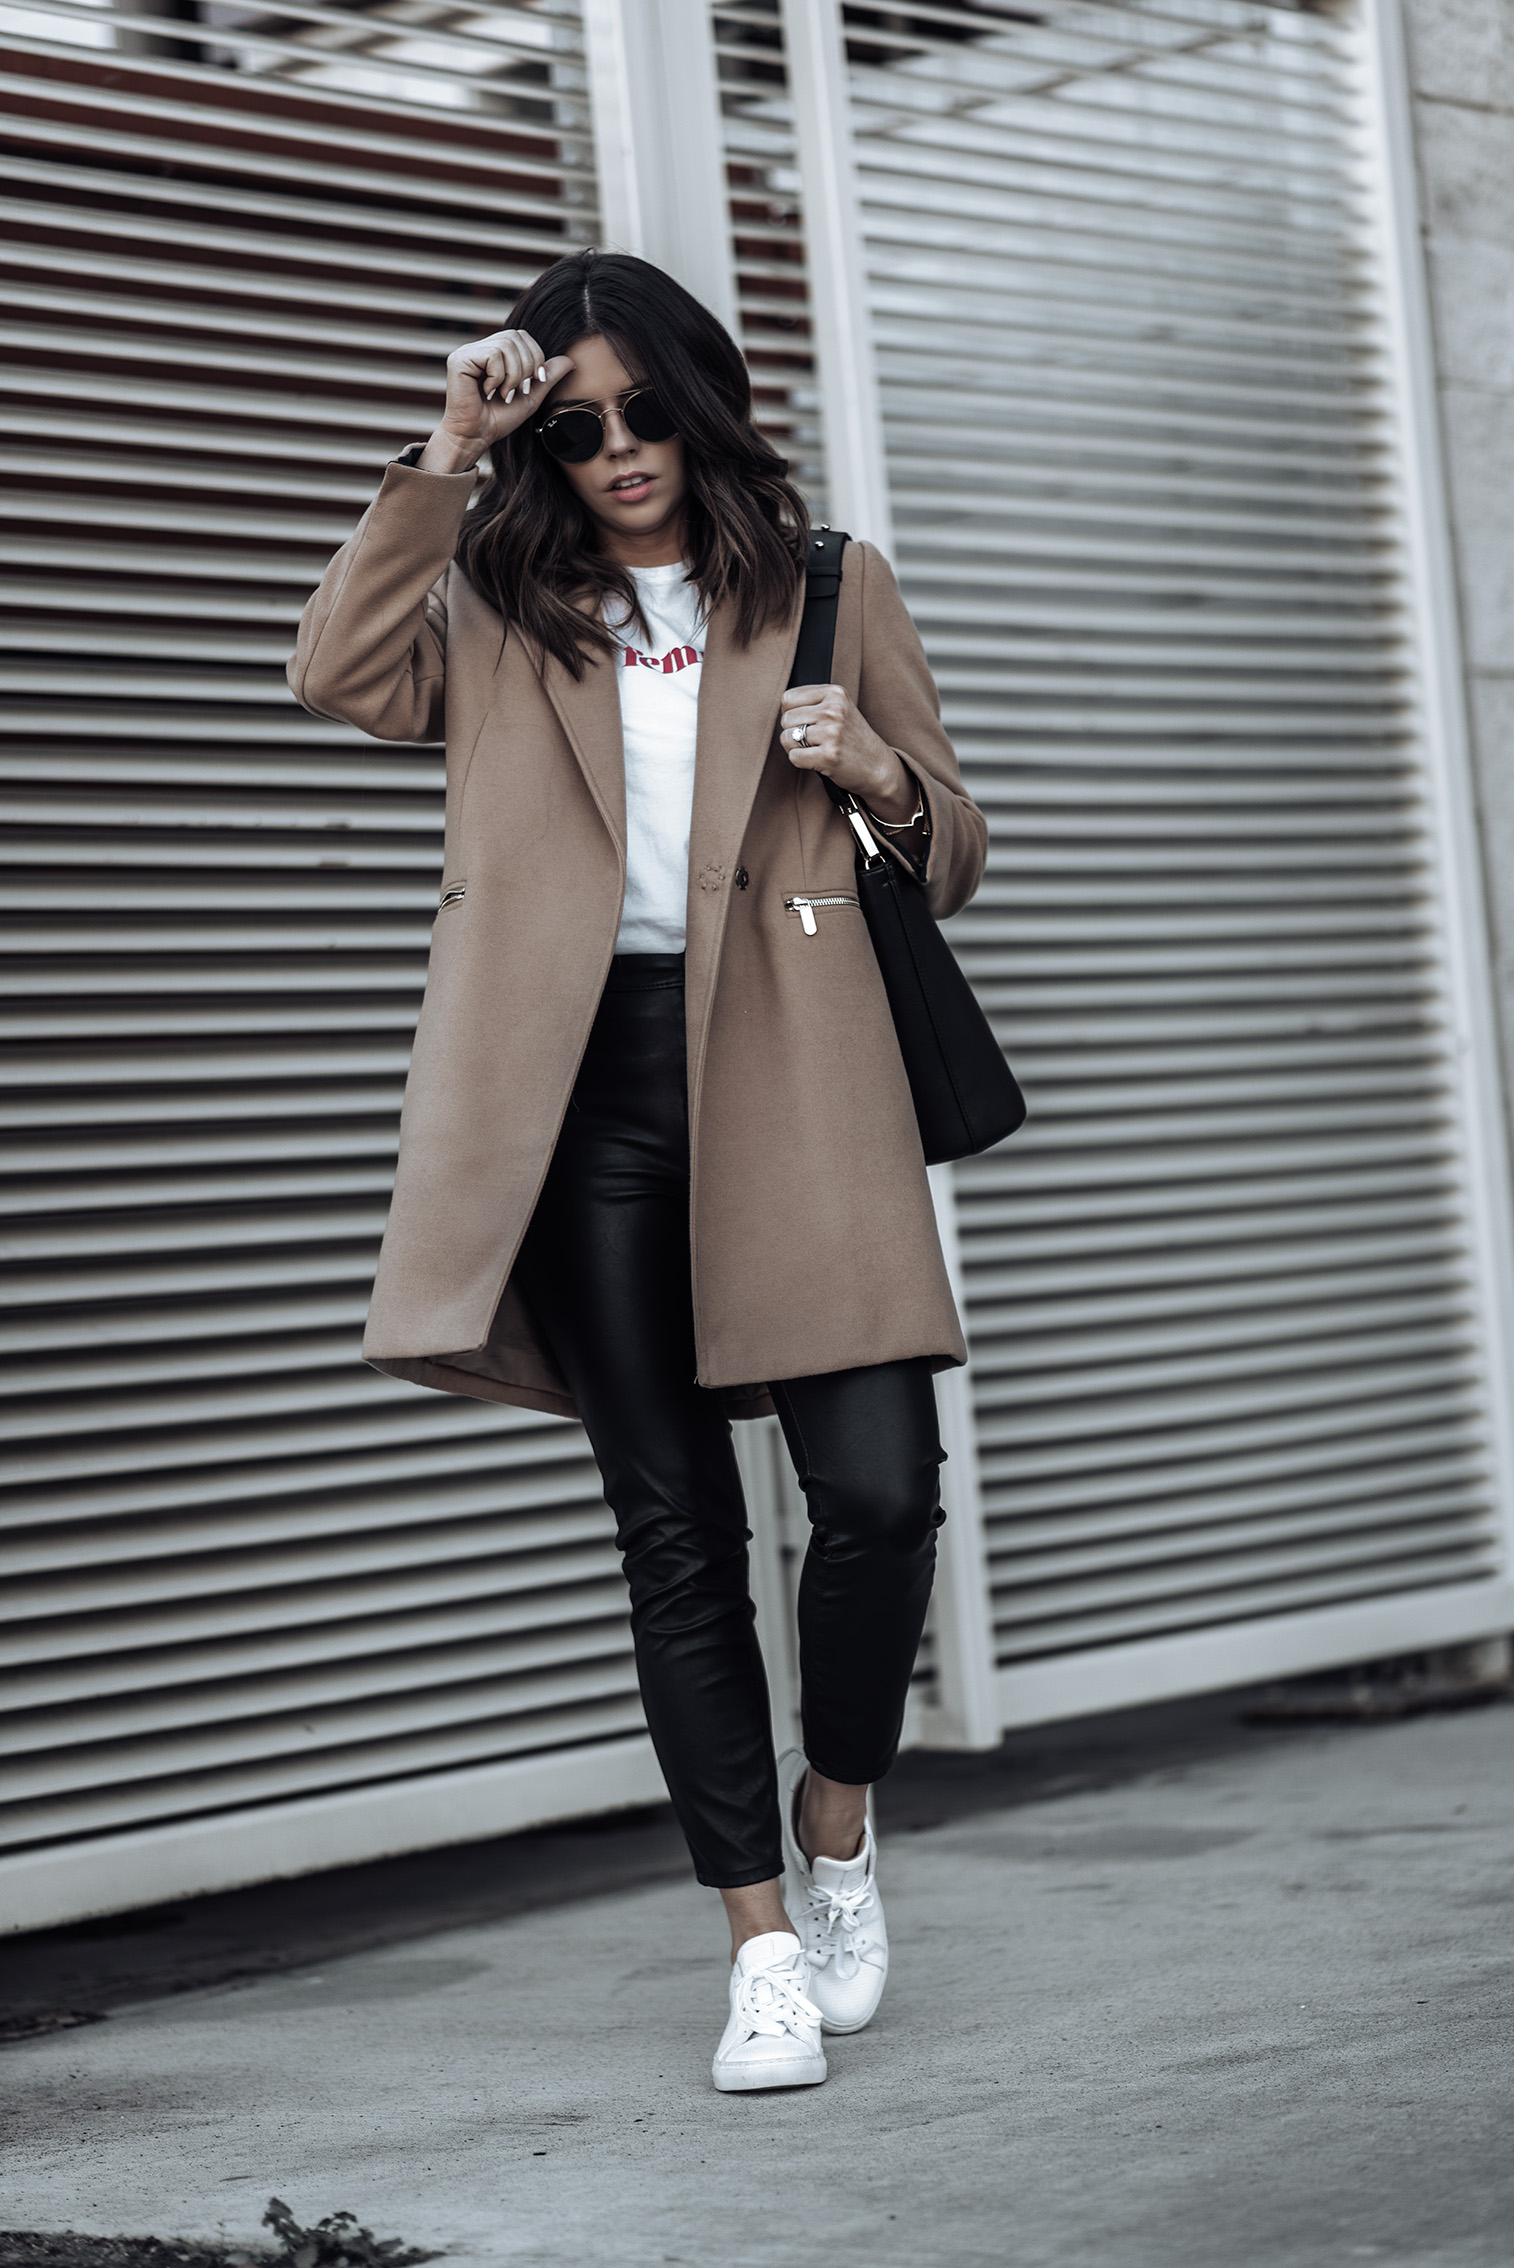 Camel coat via Topshop (similar here) | {C/O} Greats Sneakers (similar) | The principle mid rise vegan leather pant via Shopbop | Sezane La Femme Tee | Topshop bucket bag (similar)